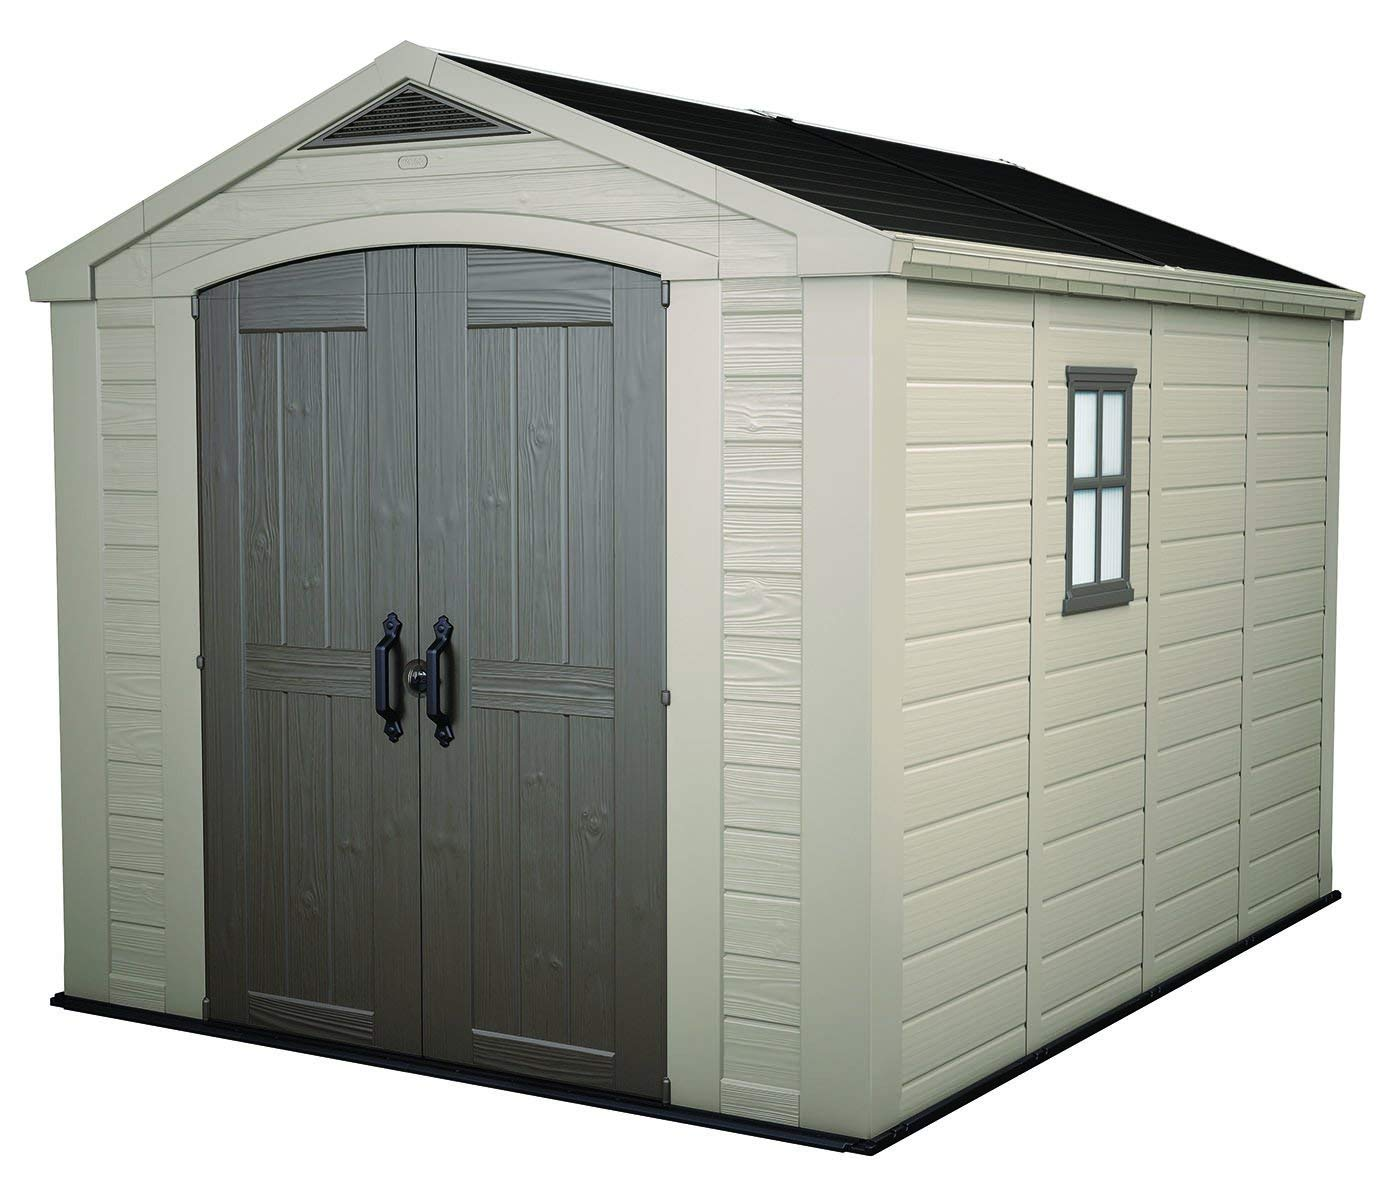 plastic garden shed amazon.com : keter factor large 8 x 11 ft. resin outdoor yard AAXOEMM